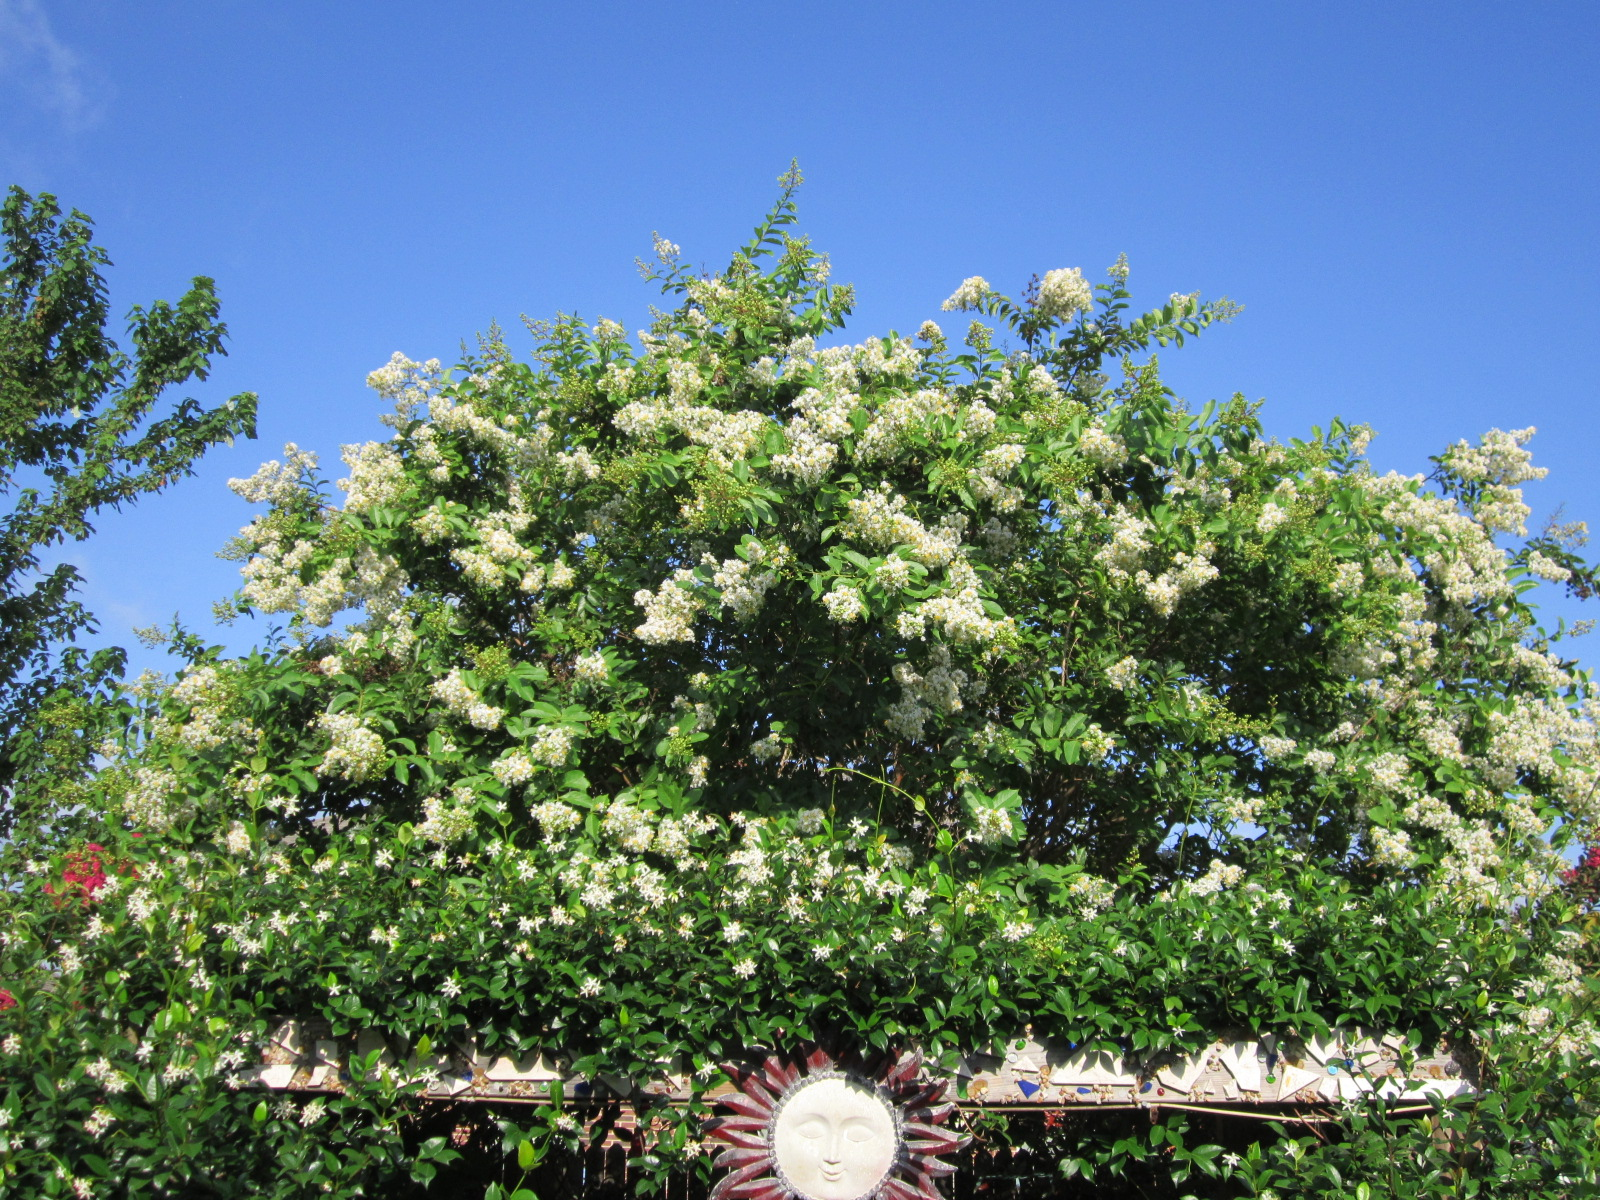 Crepe myrtles flowering xeriscape trees for the tx landscape many crepes are fragrant and the flowers fall leaving a blanket of color on the ground mightylinksfo